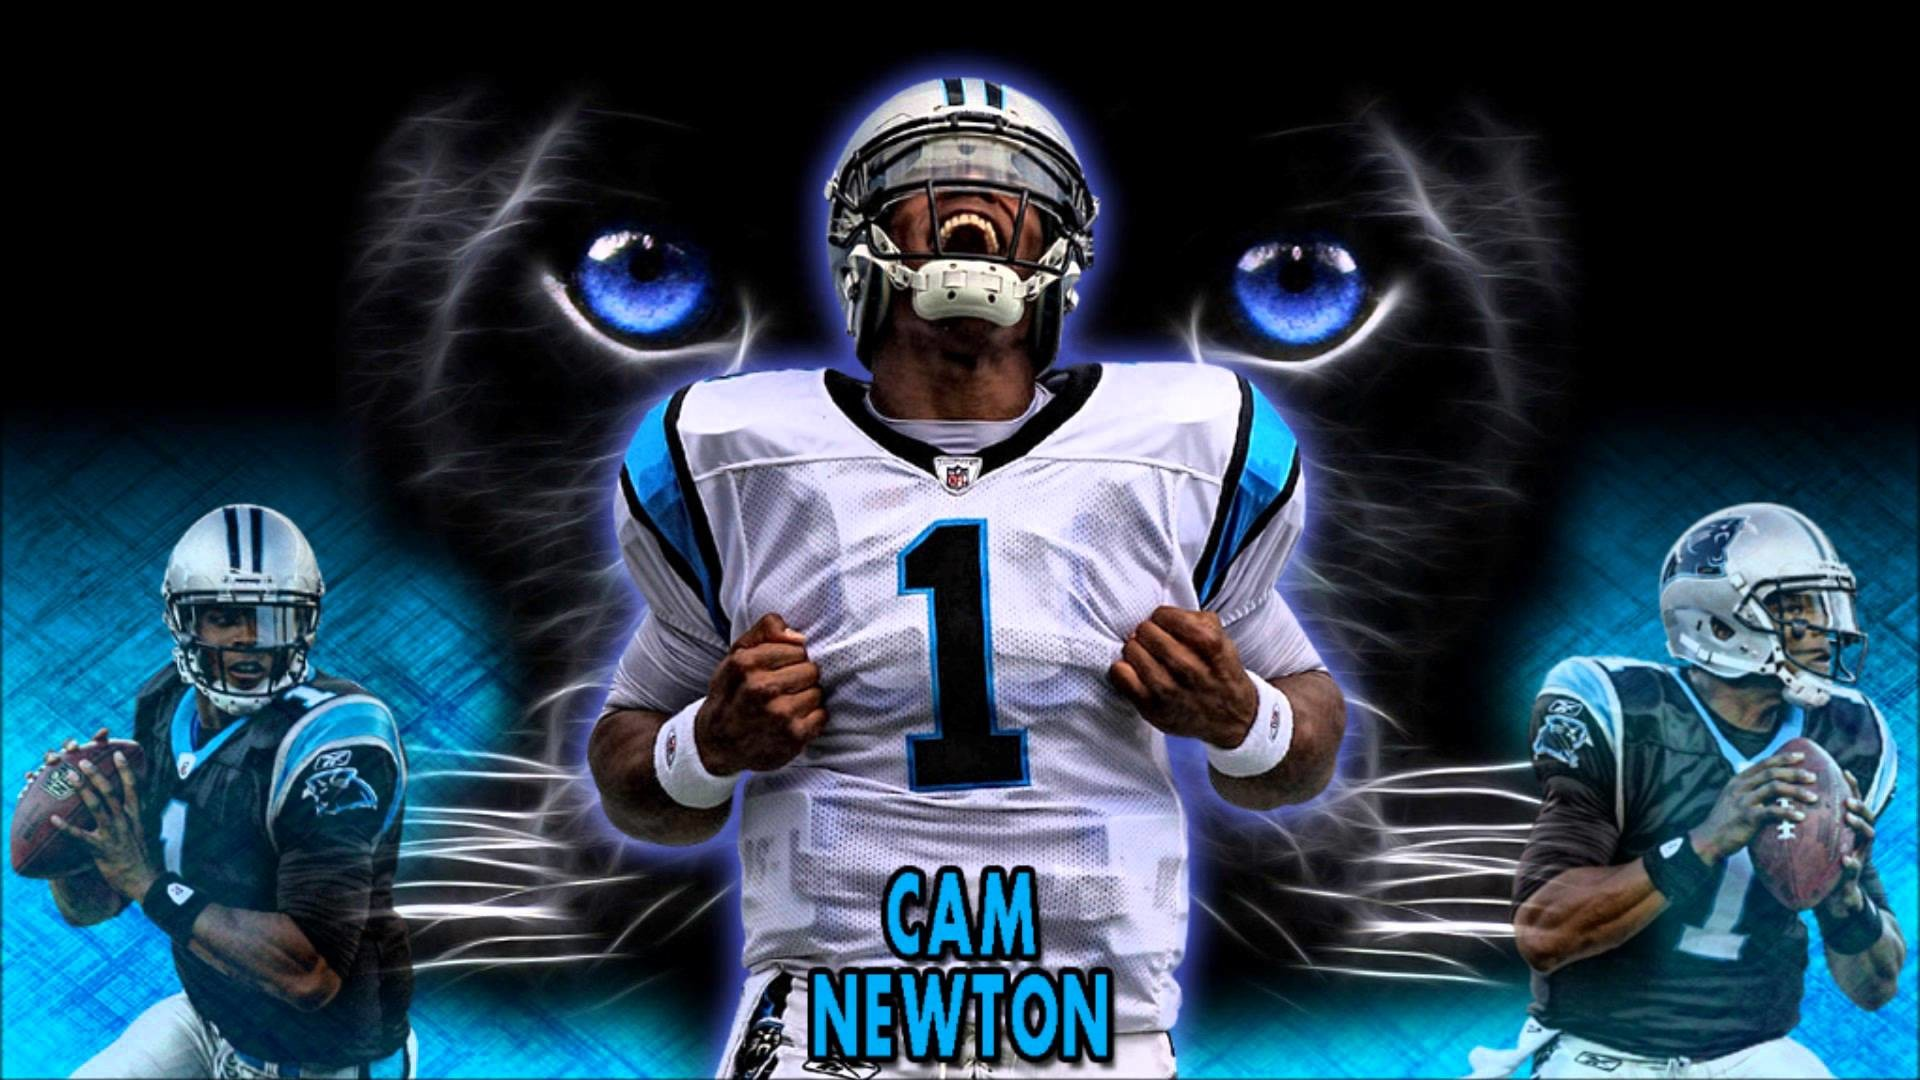 FREE NFL Cam Newton Wallpaper by youtube.com